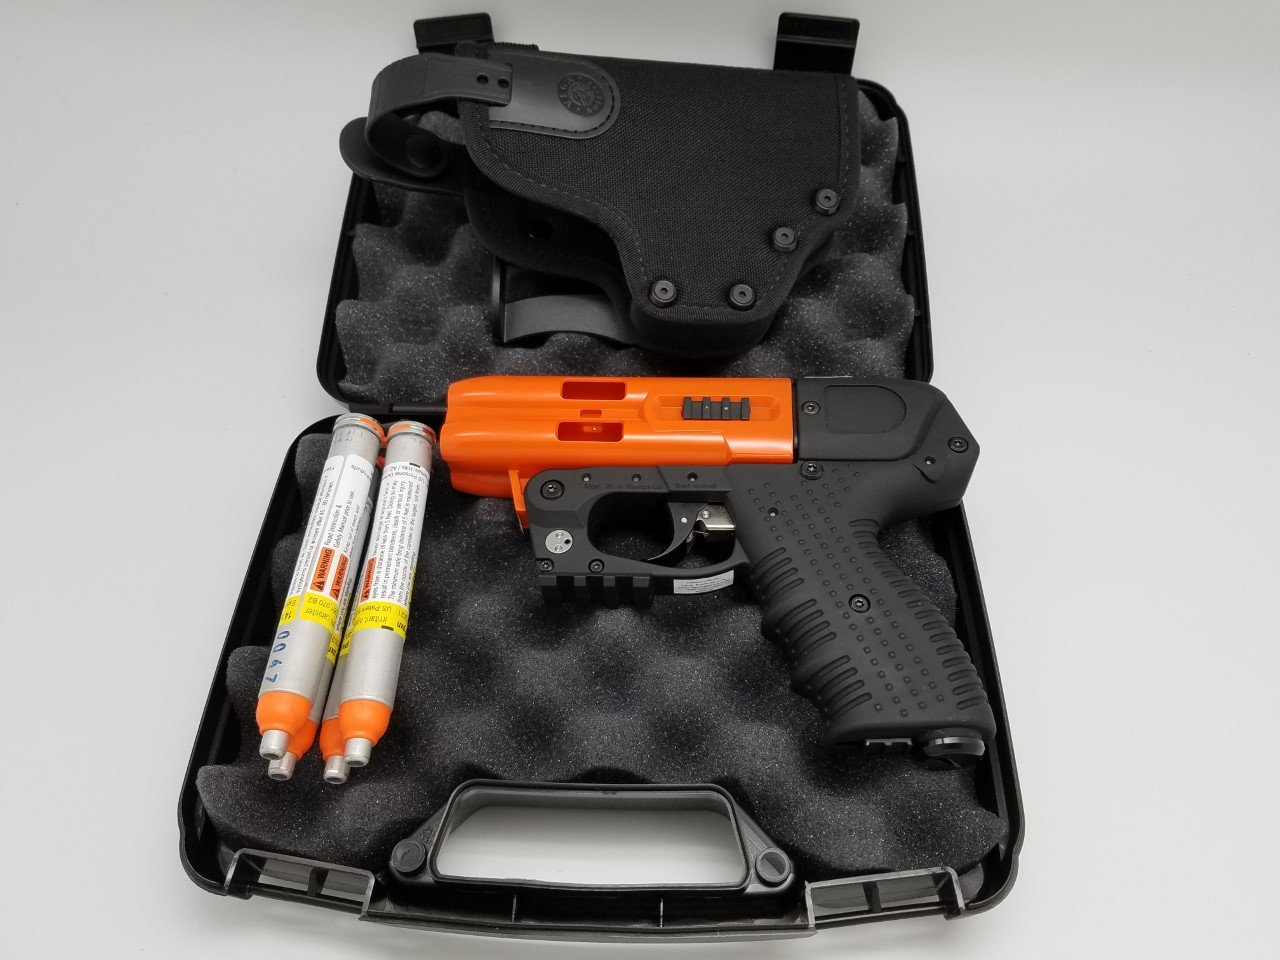 4 Shot LED Laser Pepper Spray Gun Orange Bundle with Cordura Paddle Holster by Piexon (Image #1)